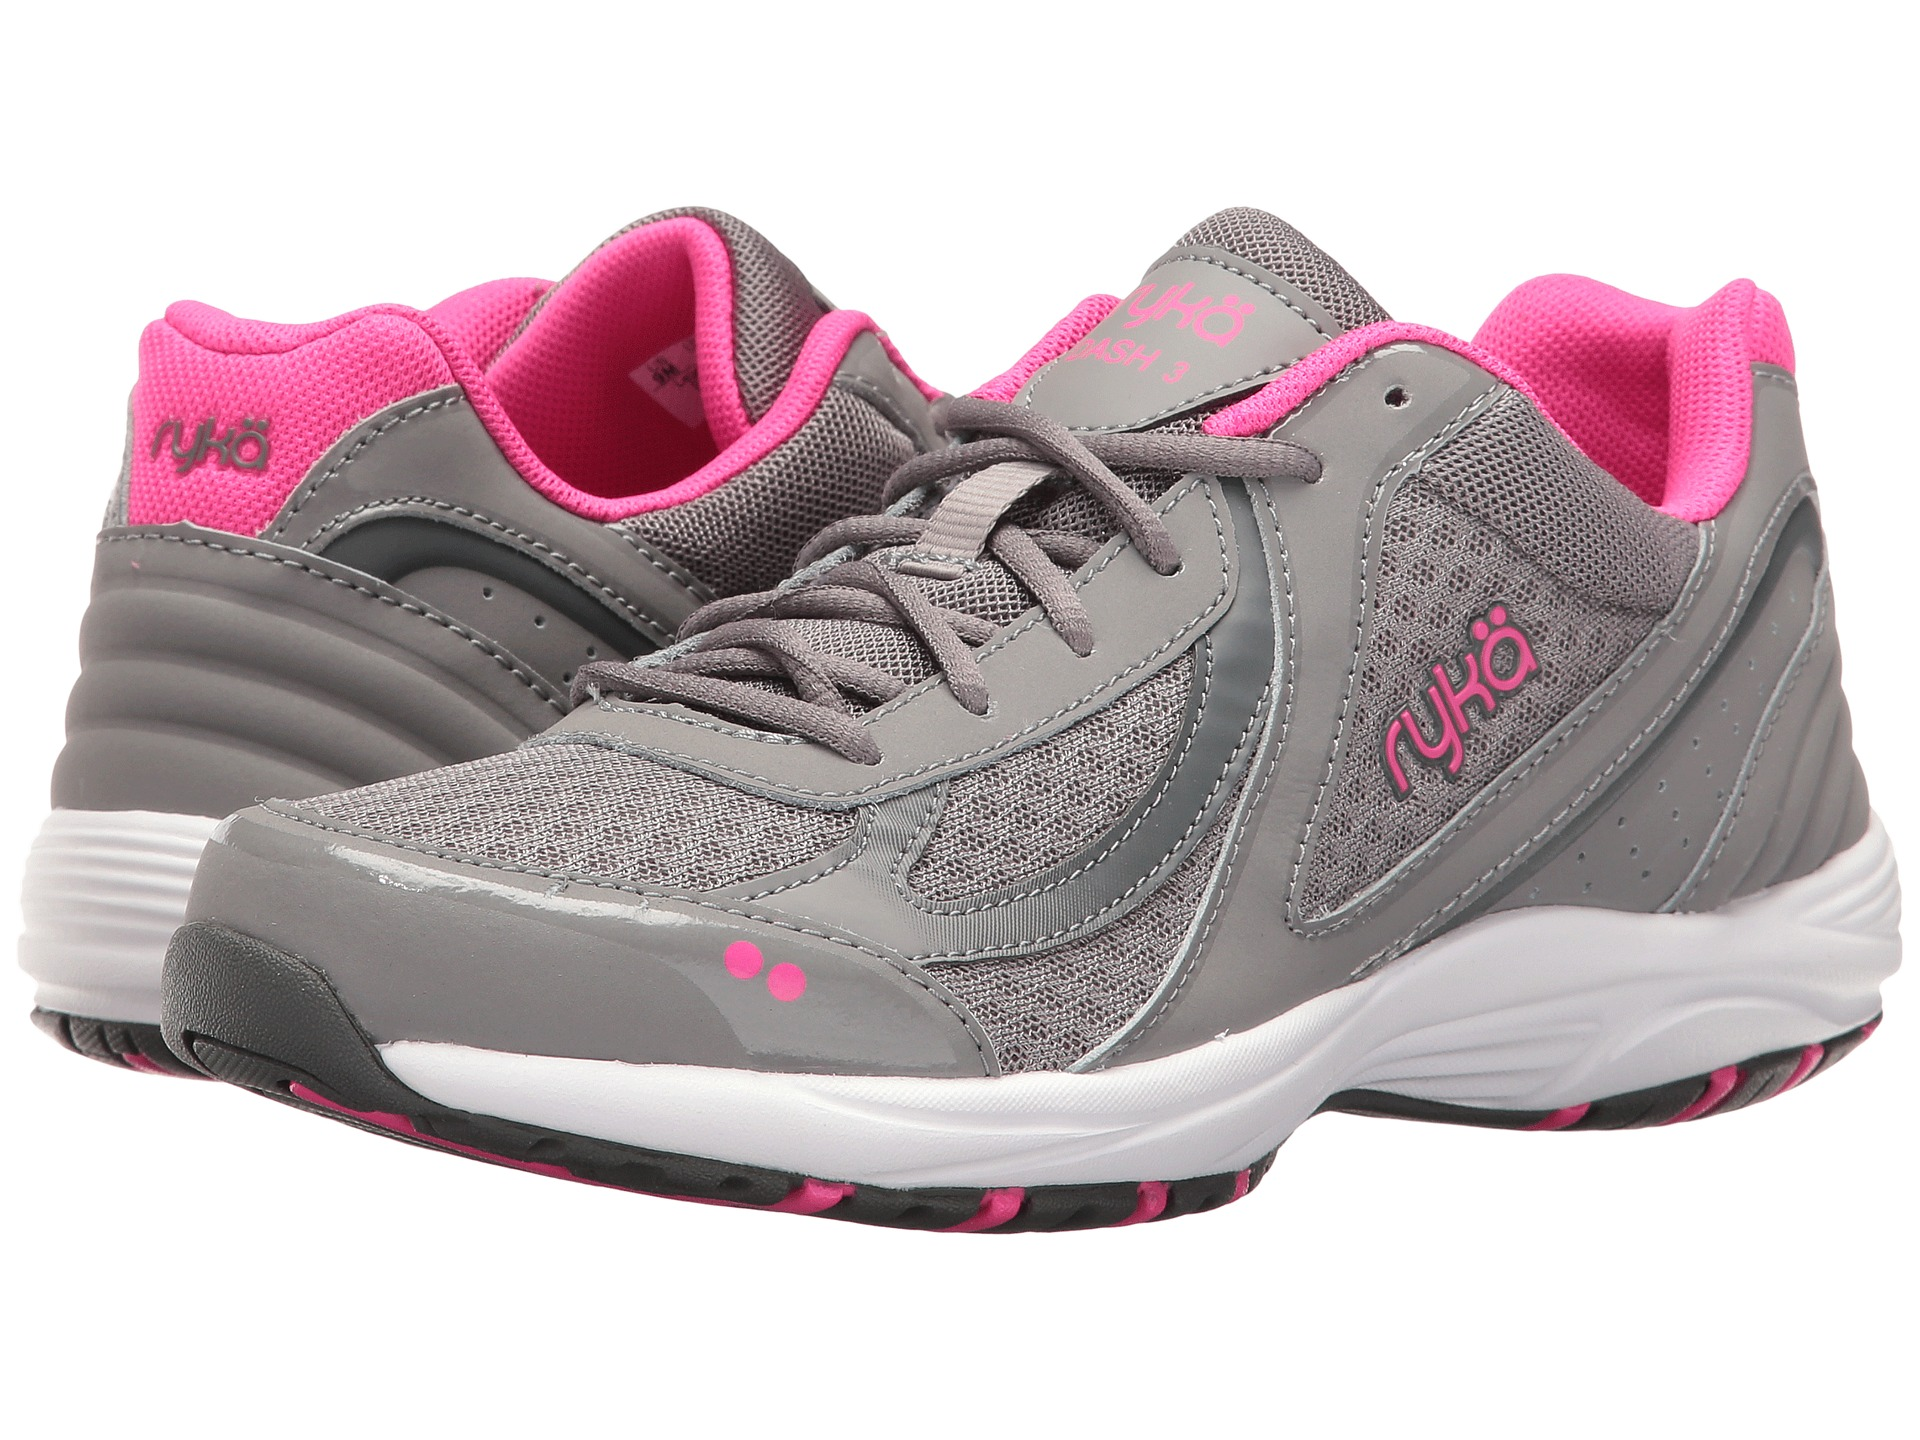 Find great deals on Womens Ryka Shoes at Kohl's today! Sponsored Links Outside companies pay to advertise via these links when specific phrases and words are searched.